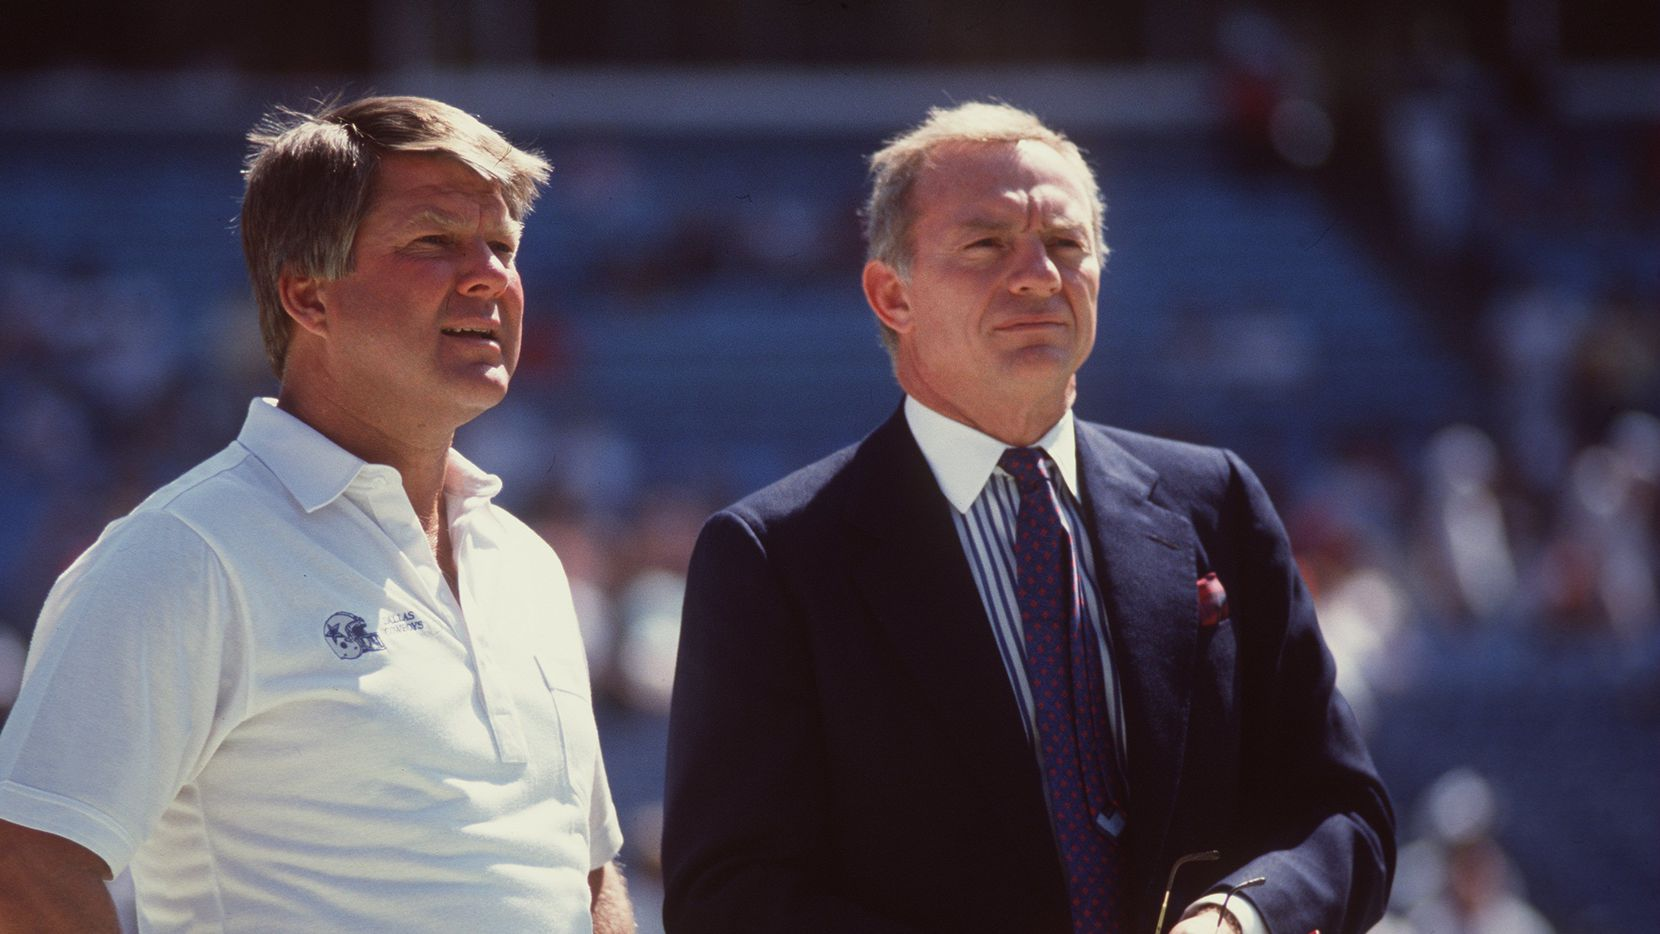 Owner Jerry Jones of the Dallas Cowboys has a conversation with team head coach Jimmy Johnson on the sidelines during pregame warmups before a Cowboys loss to Atlanta in 1990.